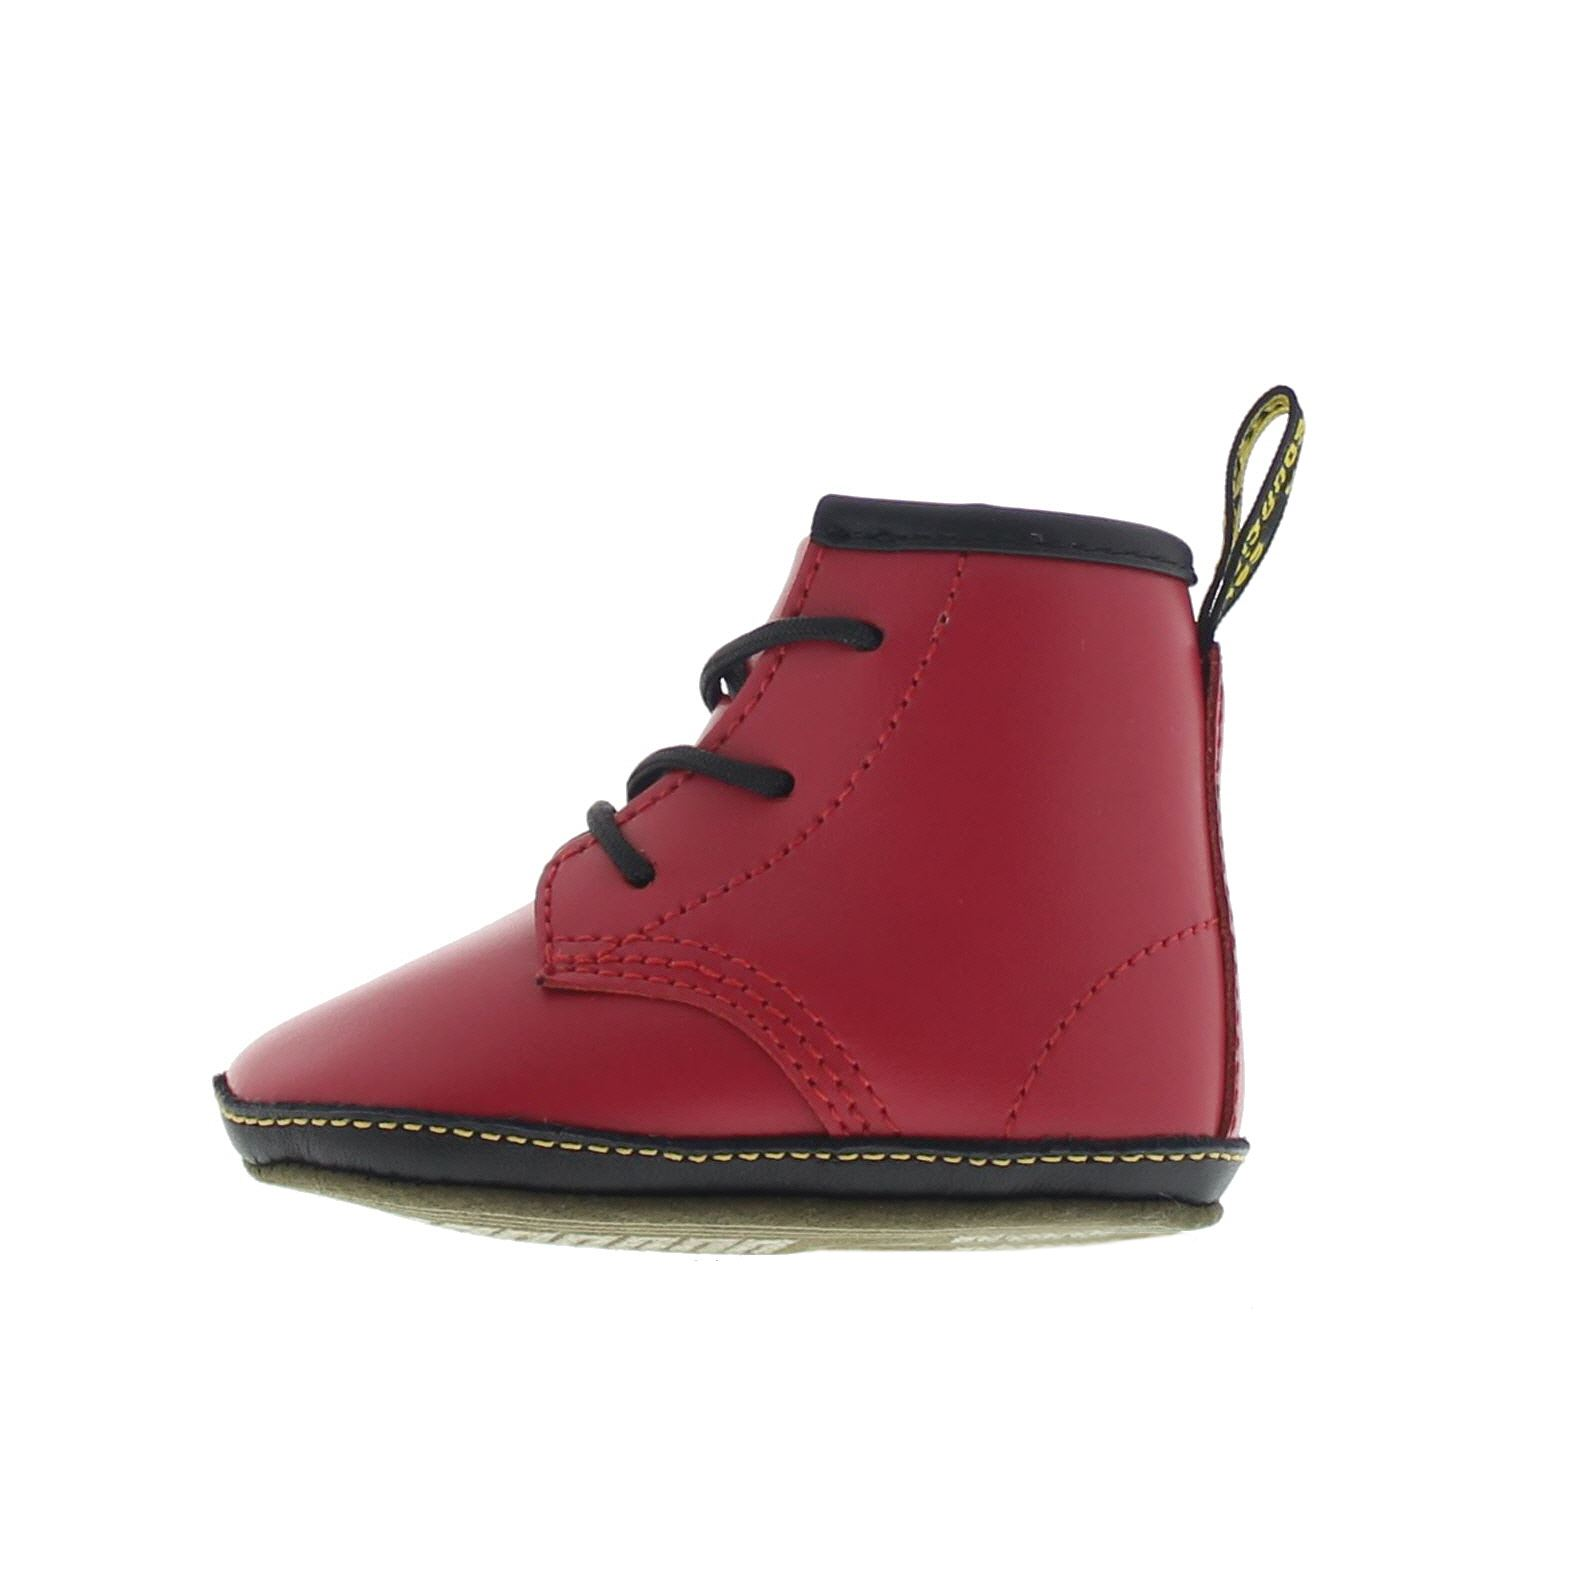 Dr Martens Auburn Crib Bootie Leather Infants Baby Lace Up Soft